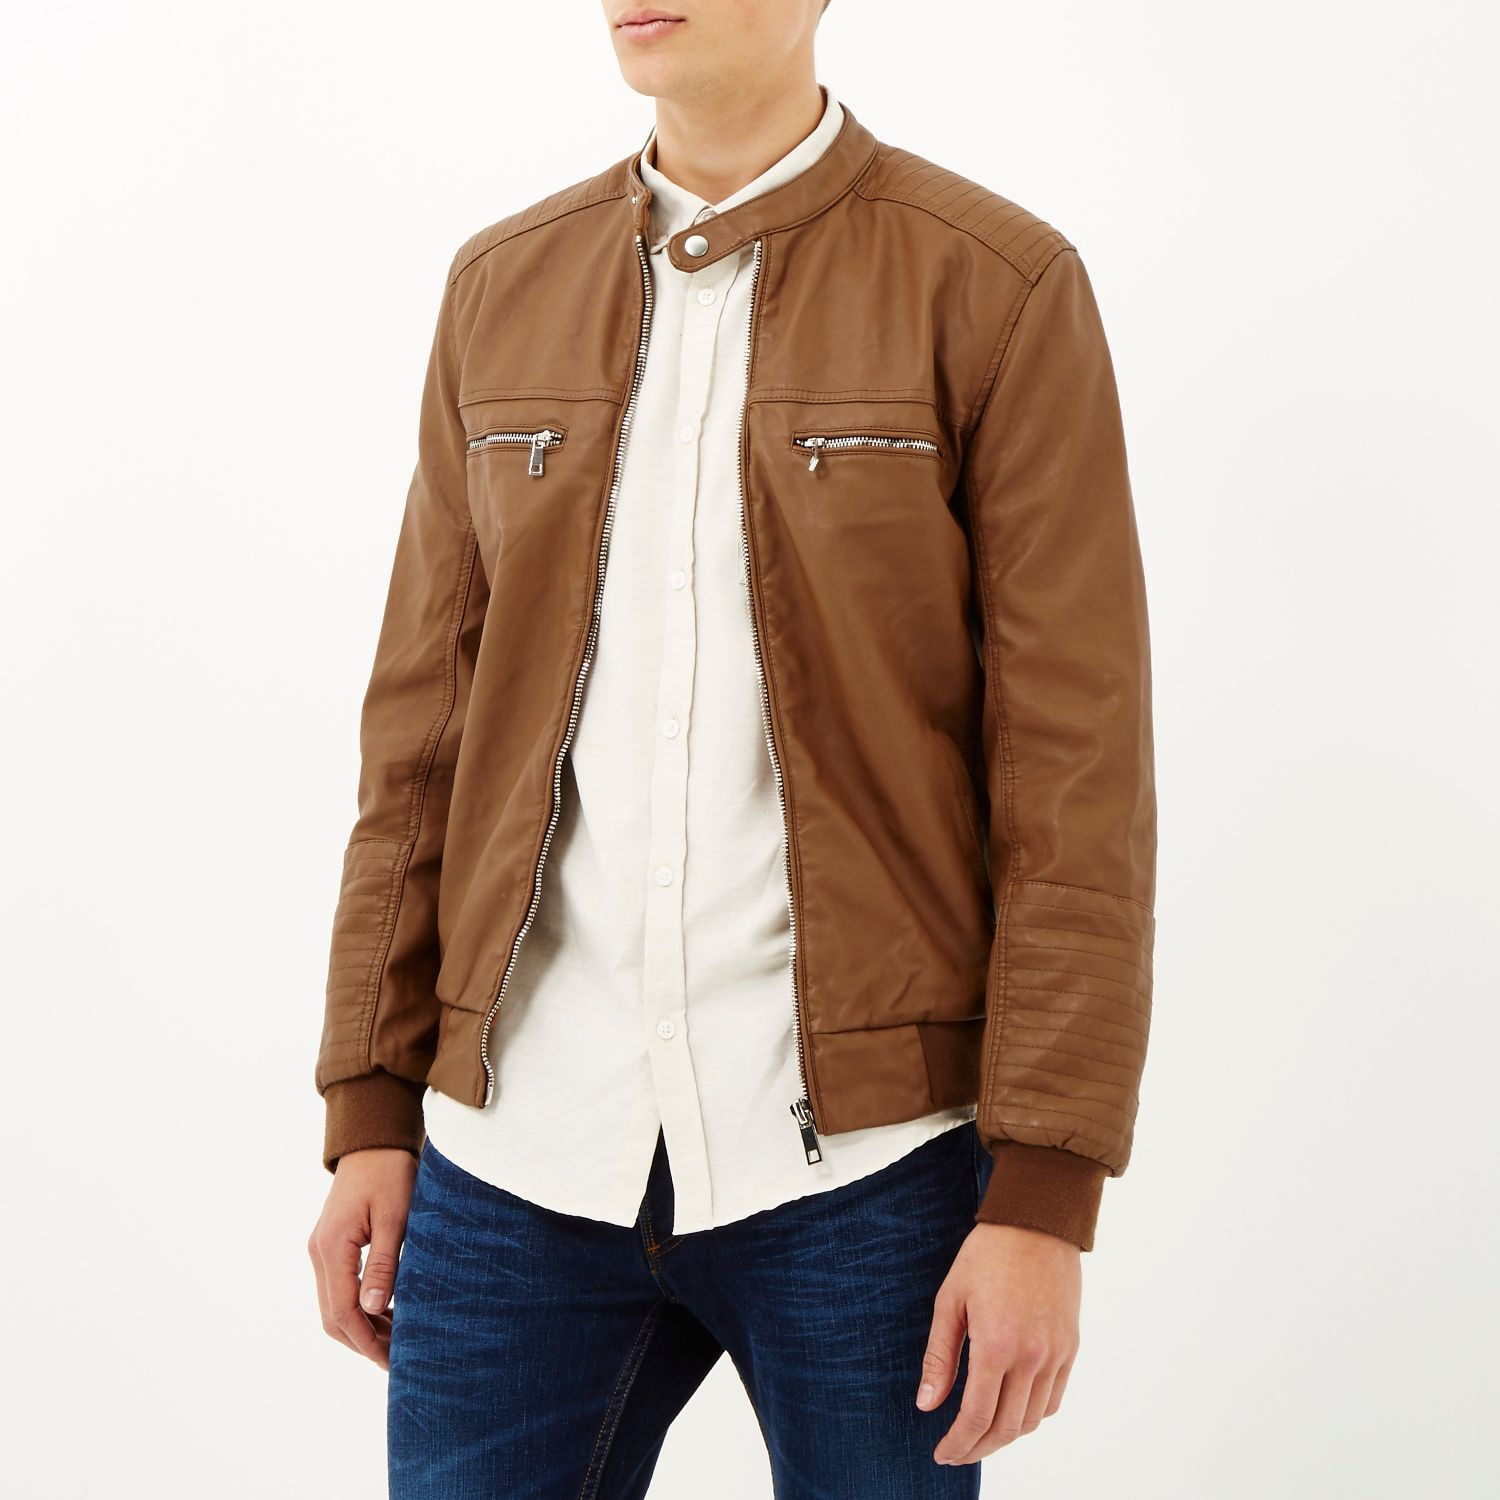 Lyst - River island Light Brown Leather-look Bomber Jacket in ...